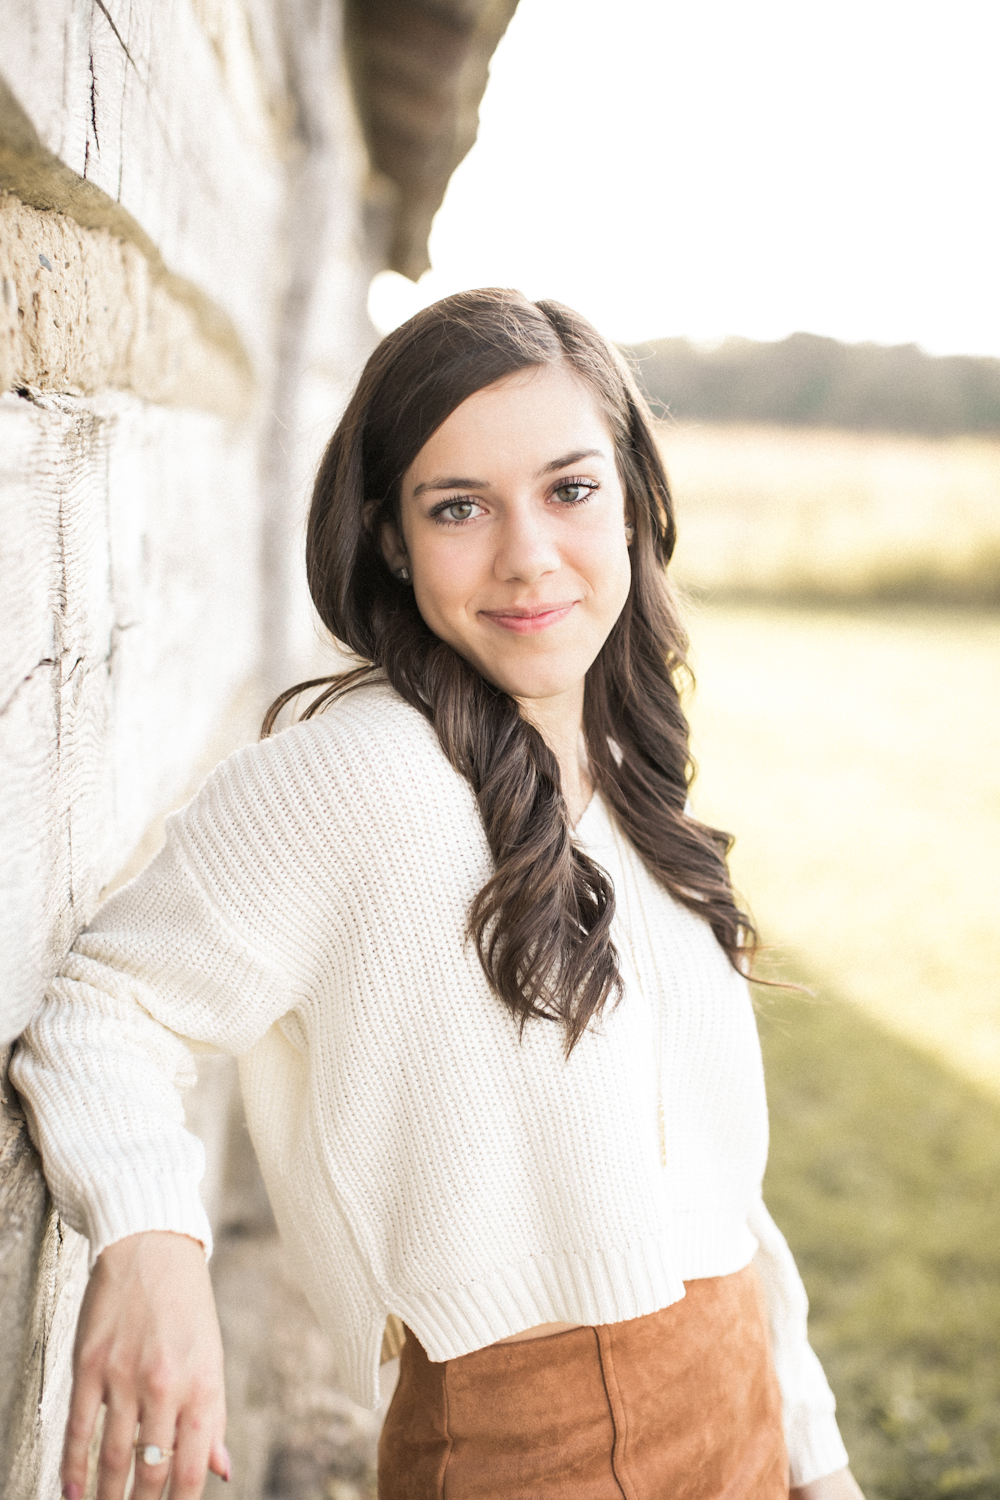 Indiana senior picture photography by Cassie Howard